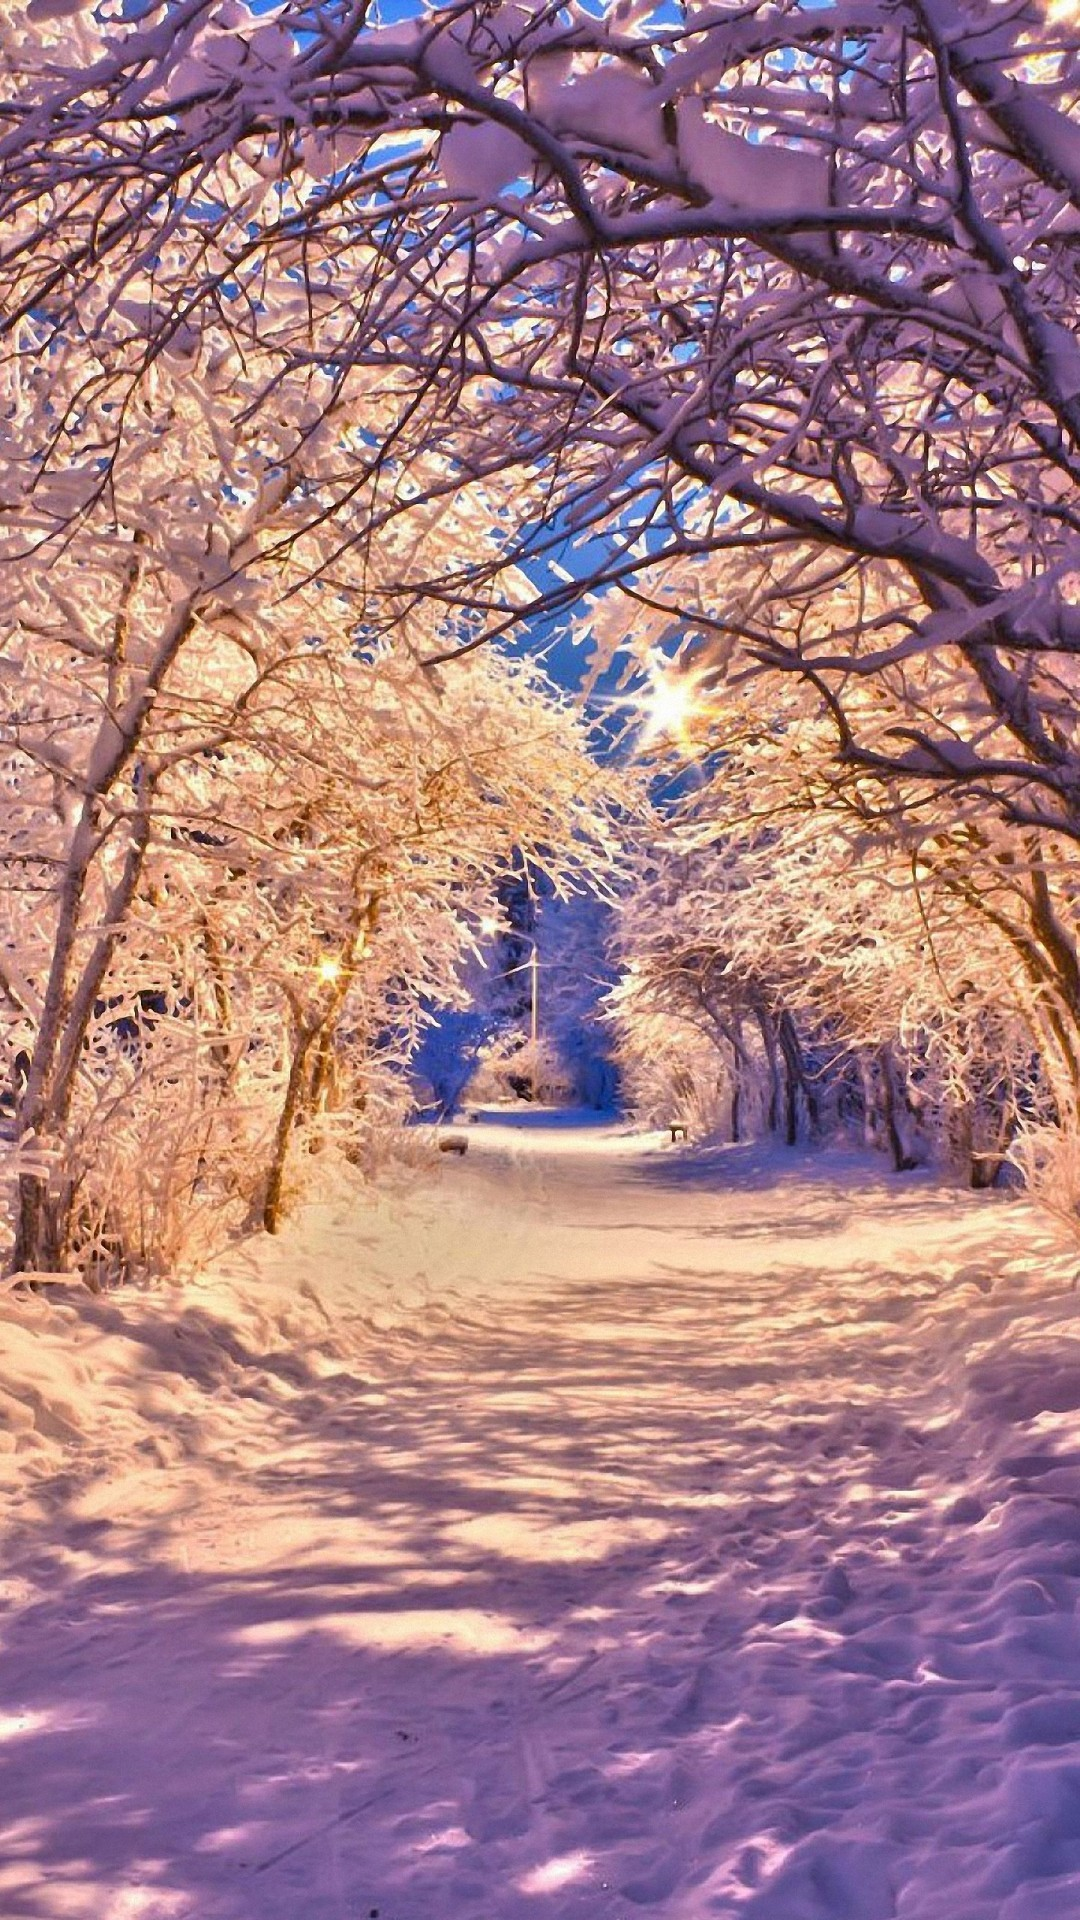 Seasons hd wallpapers for iphone 7 wallpapers pictures - Season wallpaper ...